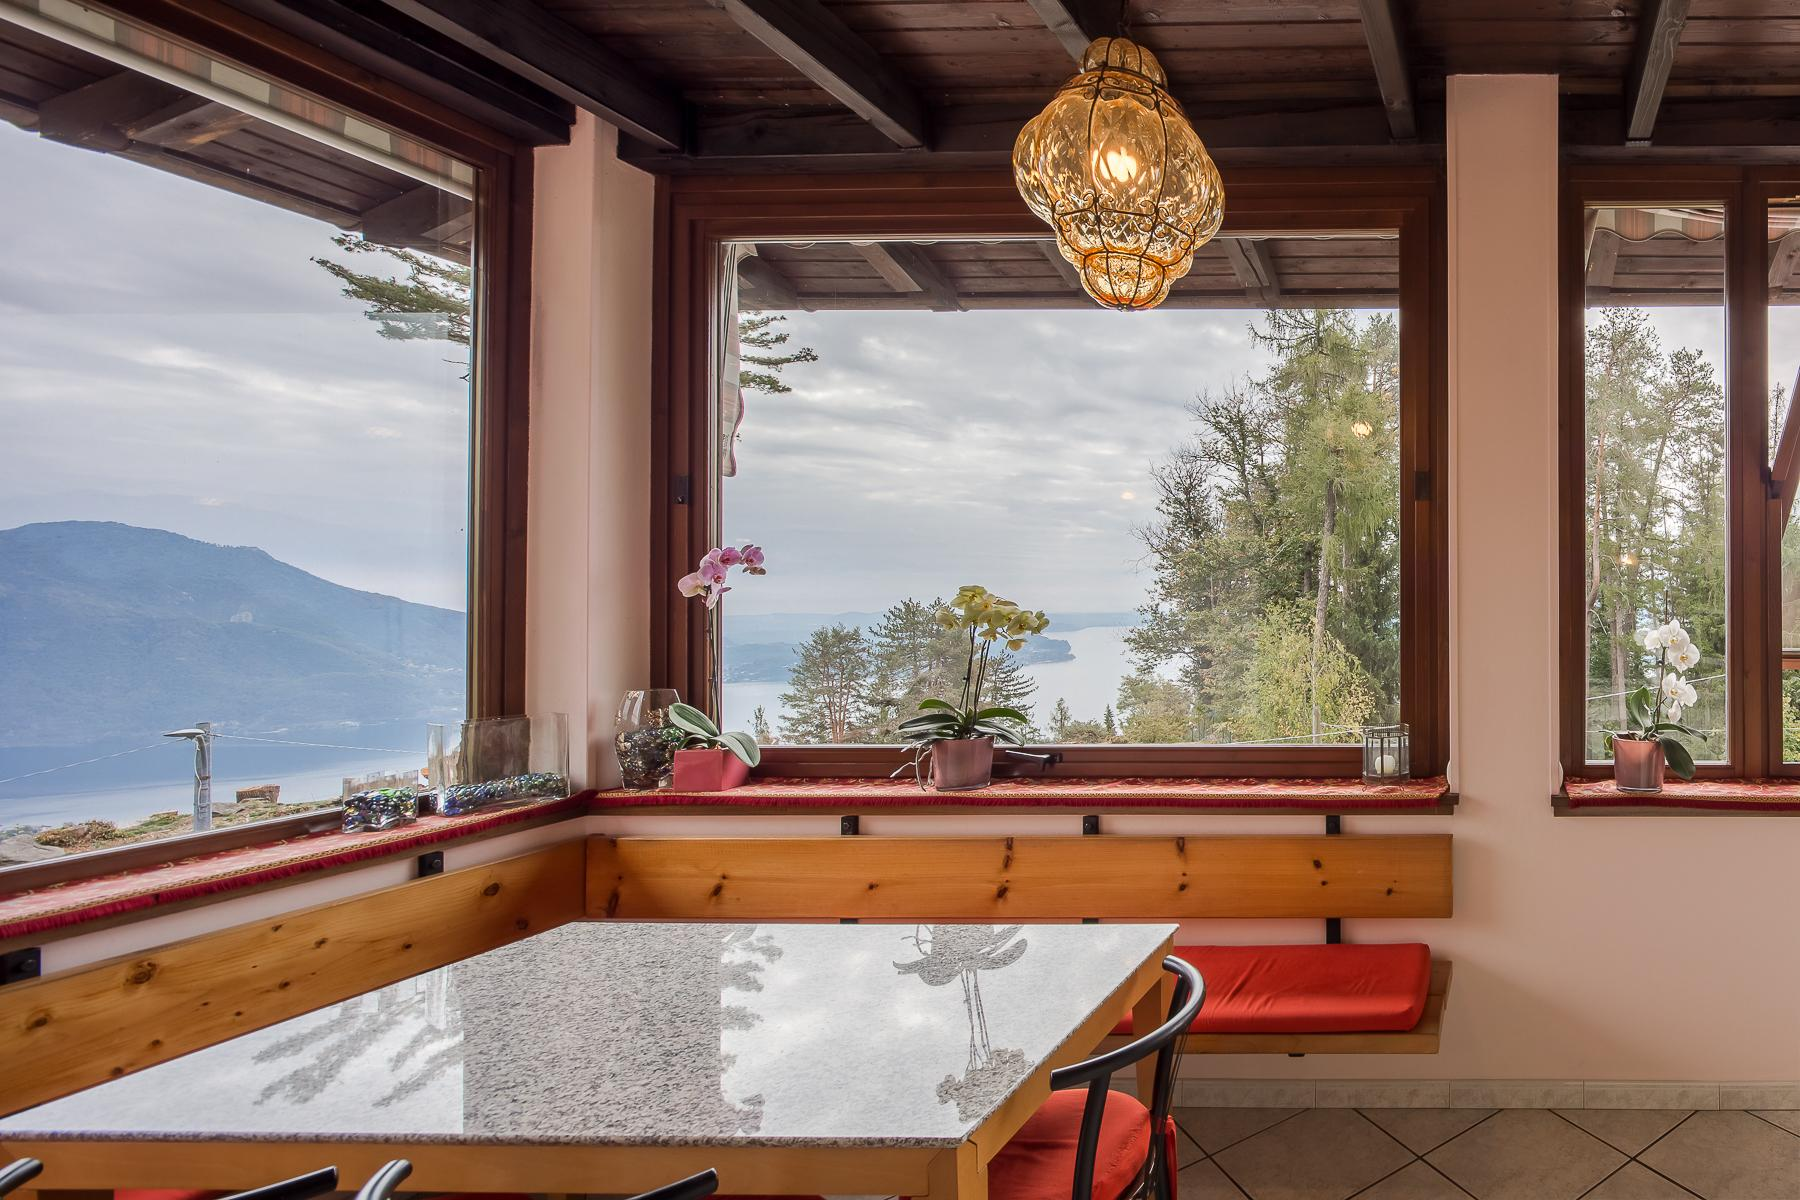 Detached Villa in the hilly area of Verbania with wonderful lake view - 2